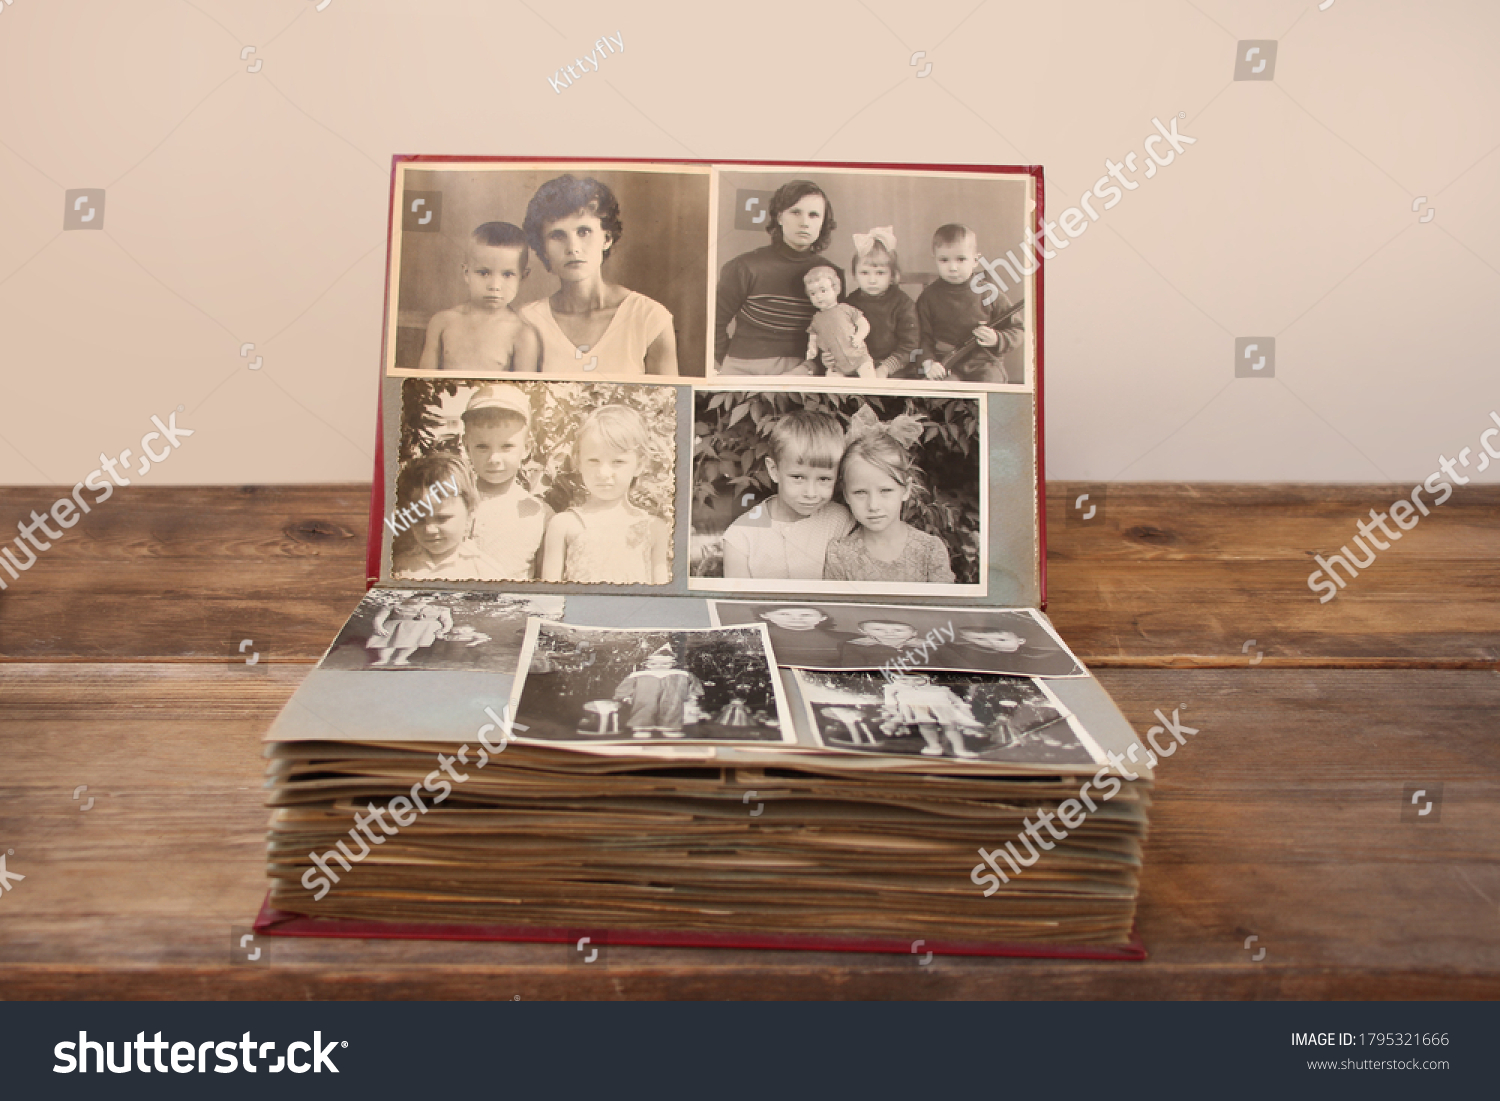 old retro album with vintage monochrome photographs in sepia color, taken in 1955-1960, concept of genealogy, the memory of ancestors, family ties, childhood memories #1795321666